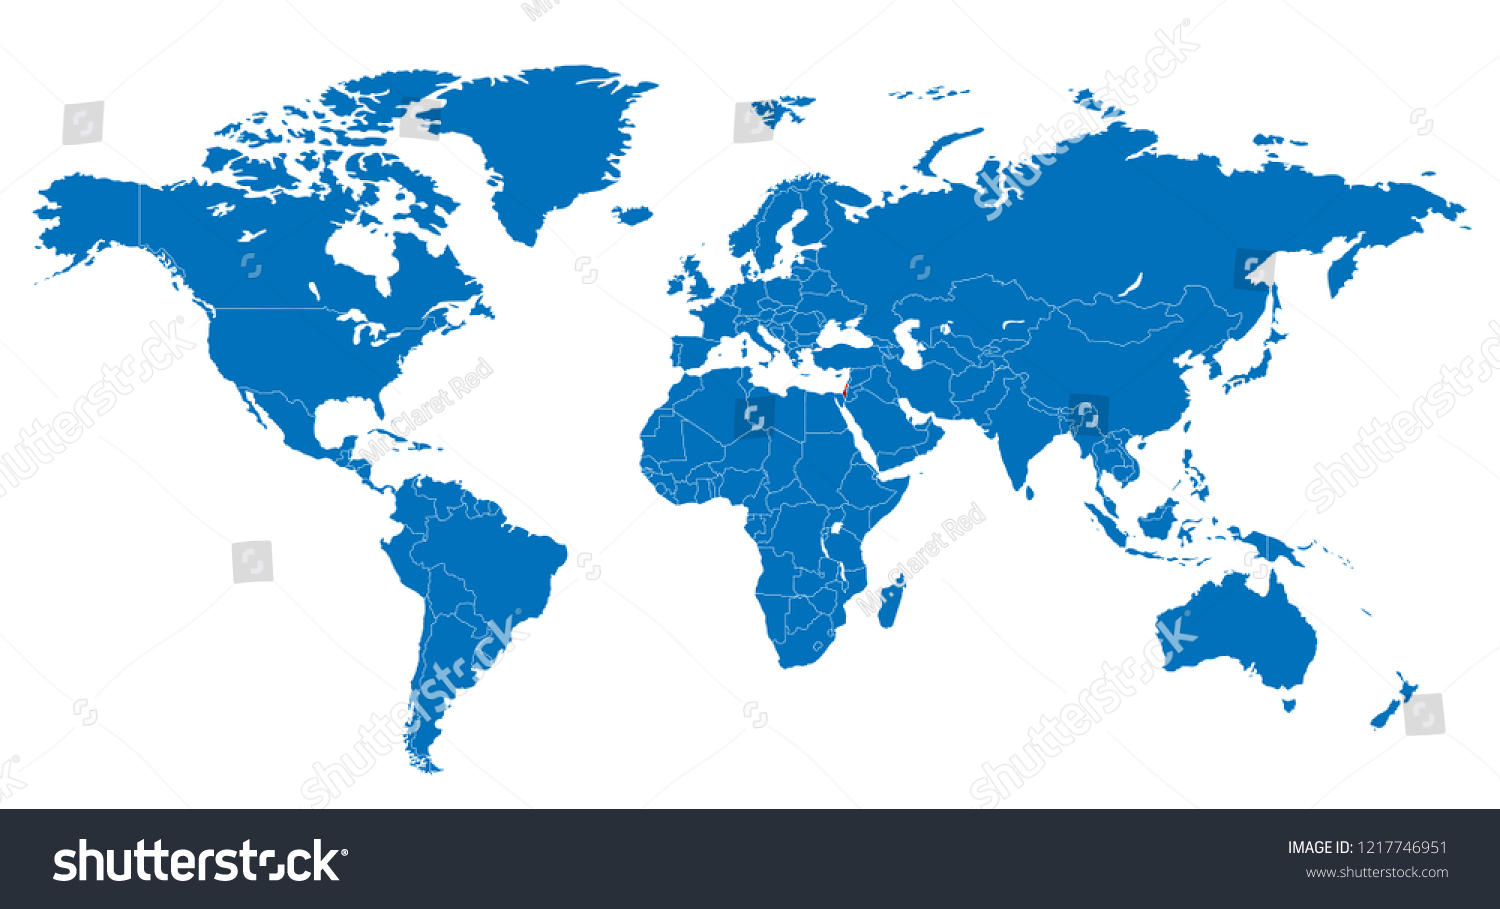 Israel On A Map Of The World.World Israel Map Stock Vector Royalty Free 1217746951 Shutterstock